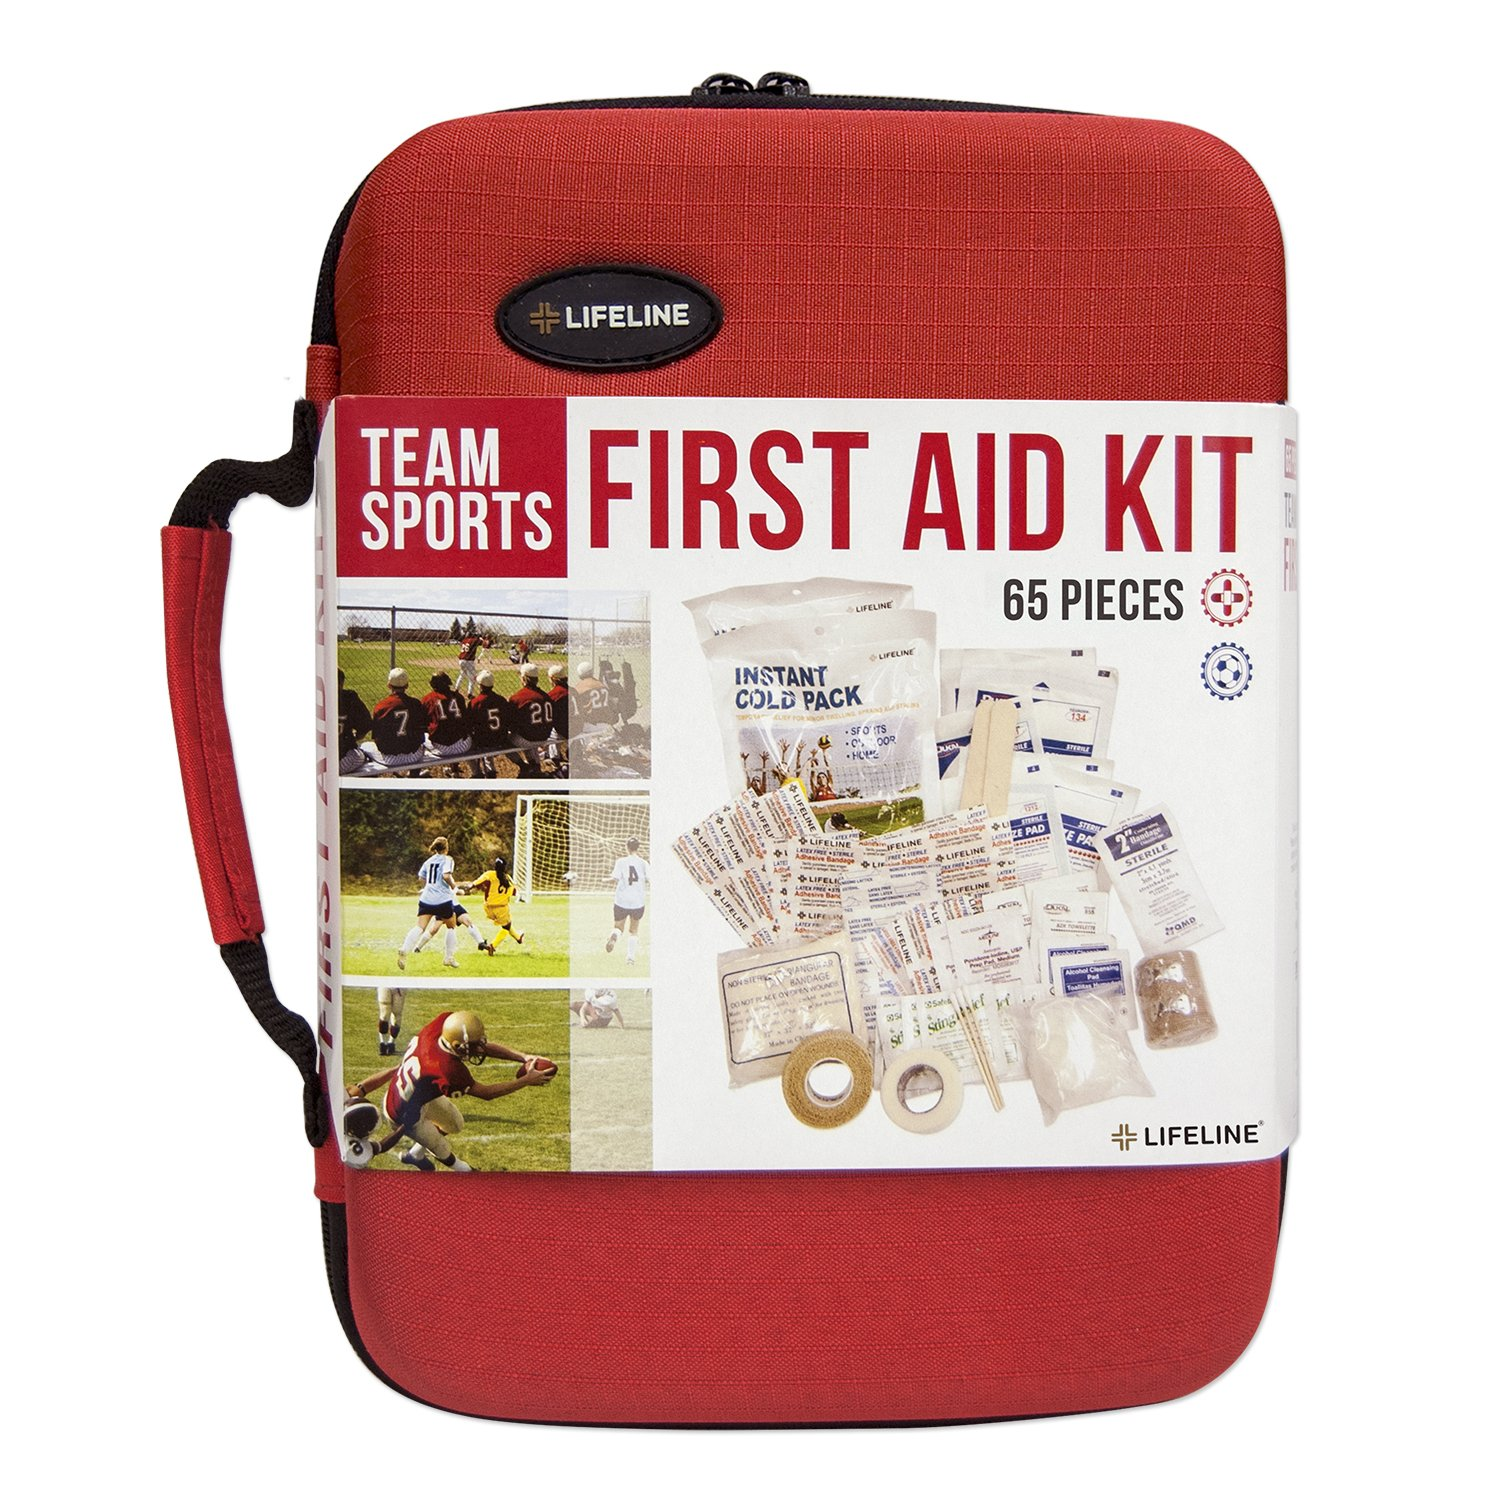 Lifeline Team Sport Trainer First Aid and Safety Kit, Stocked with essential first aid components for emergencies resulting from outdoor and team sports activities